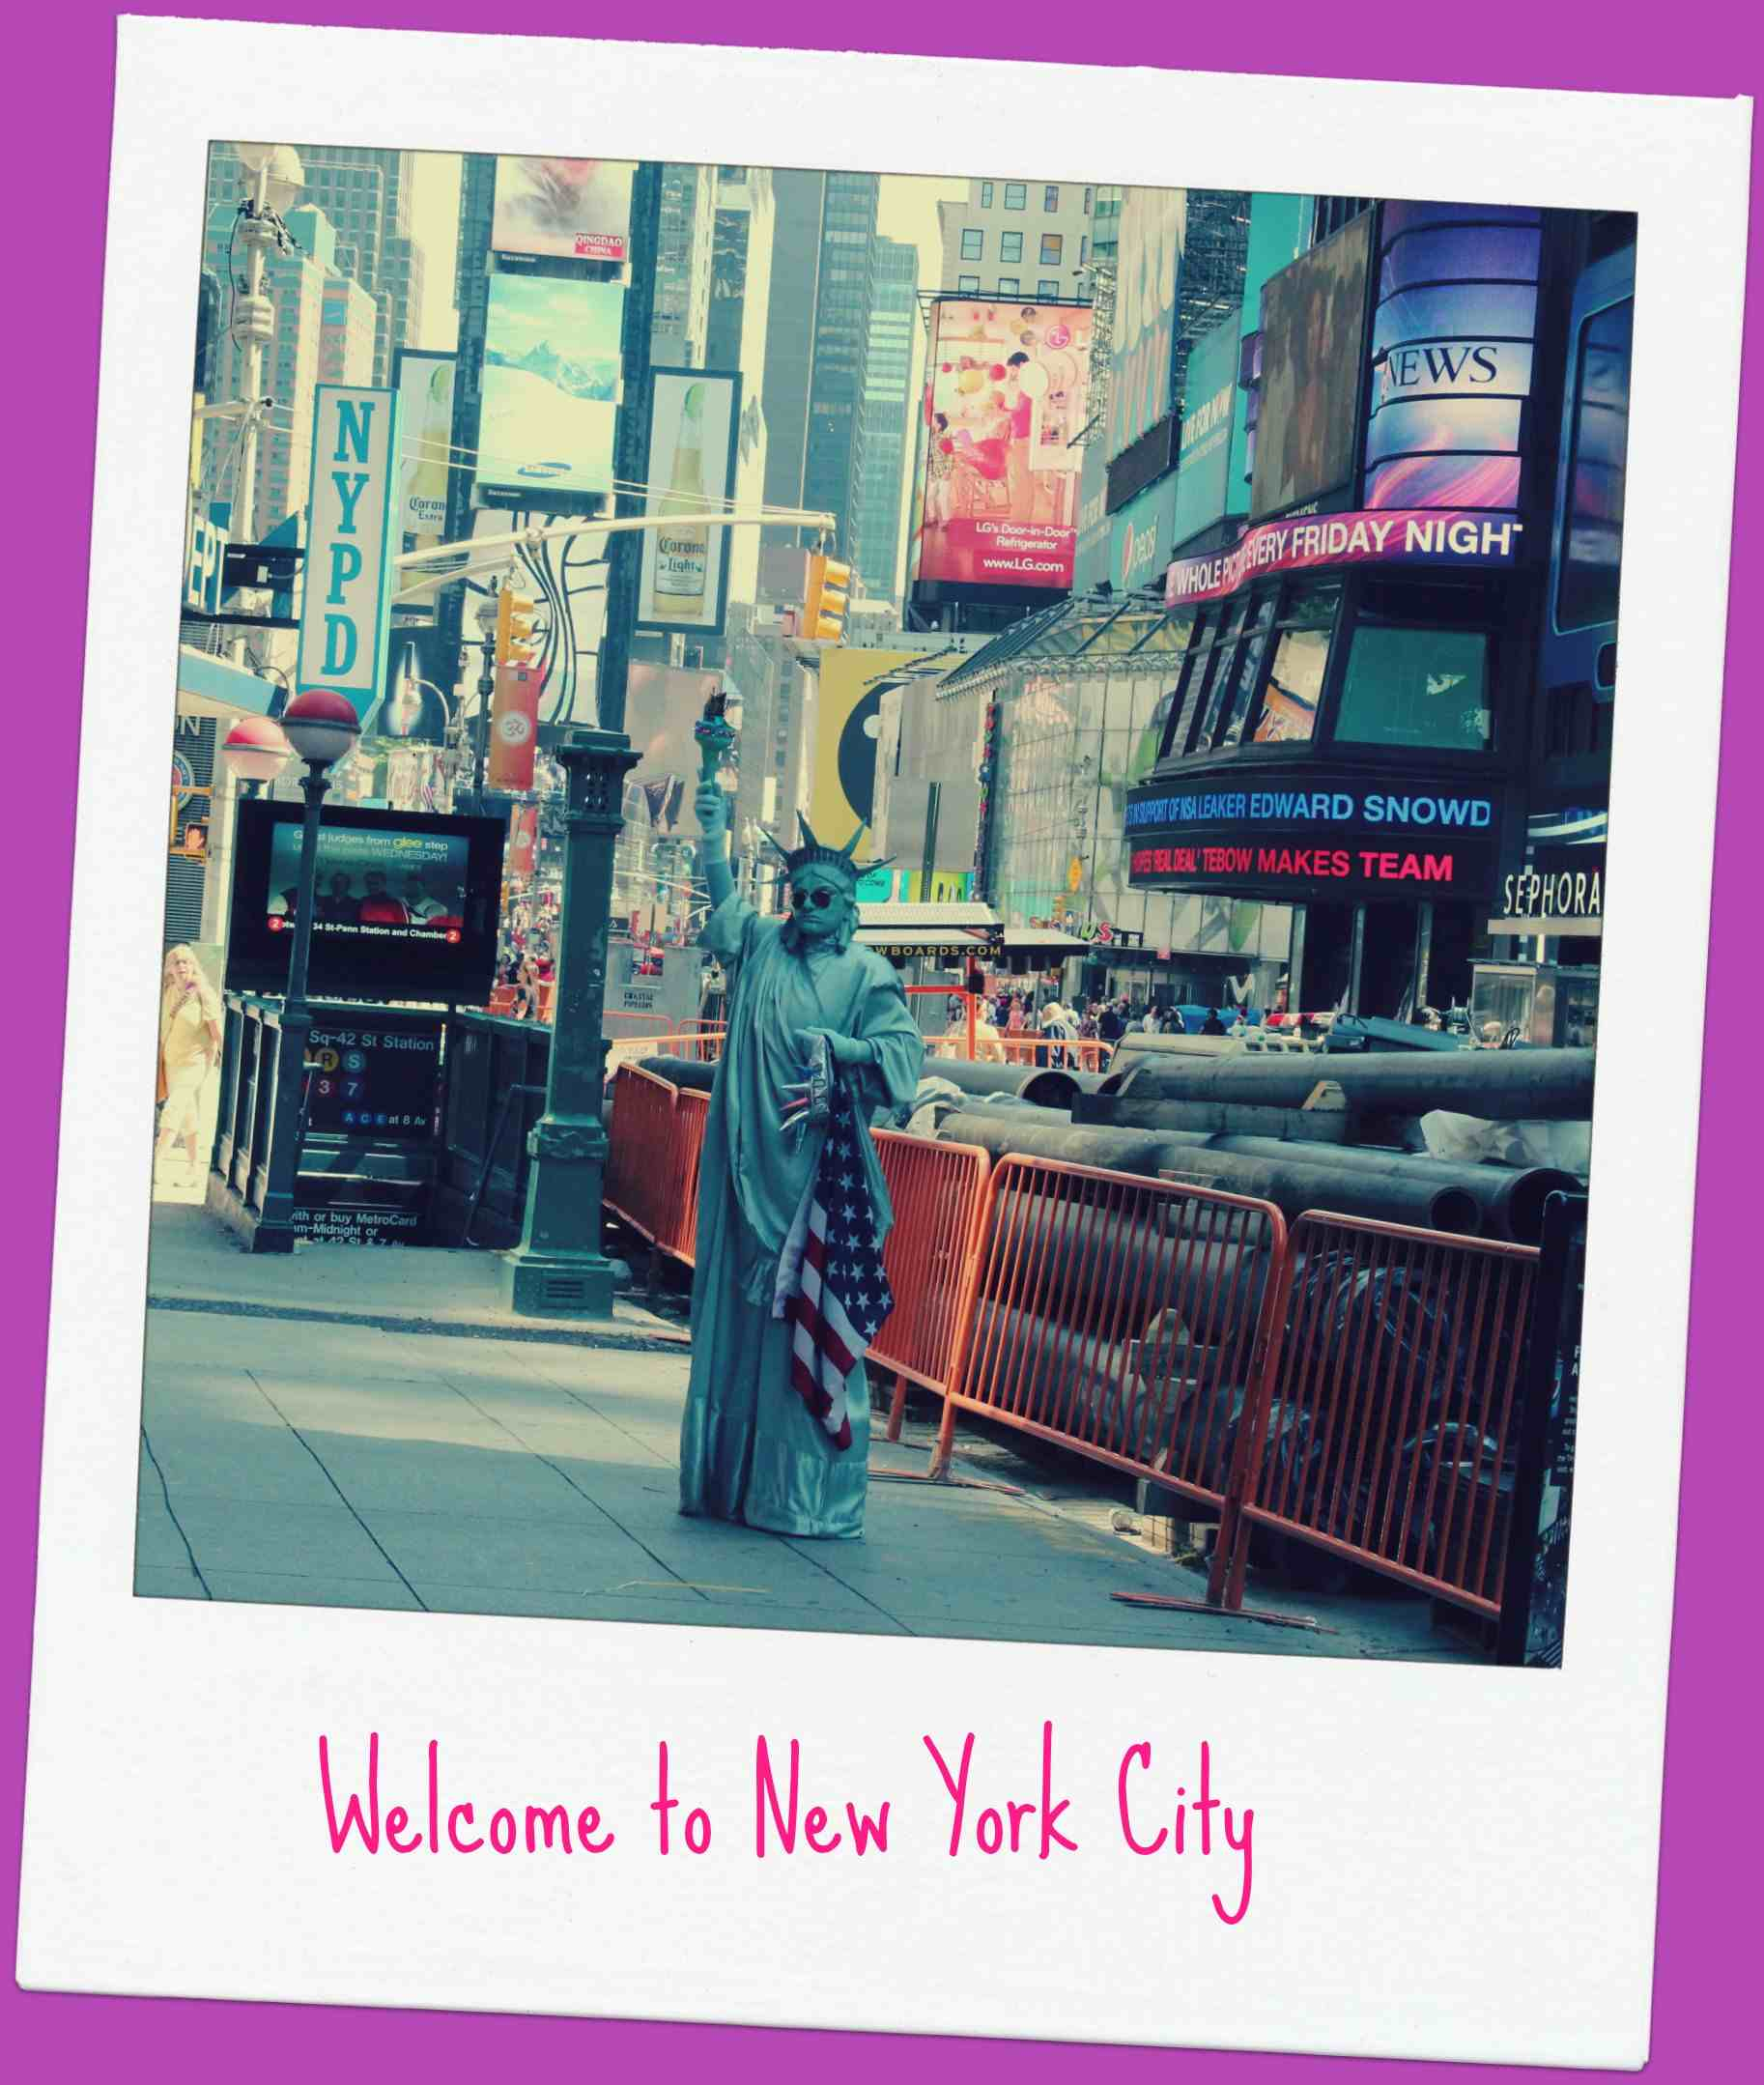 25 things to do with kids in new york for Times square new york things to do